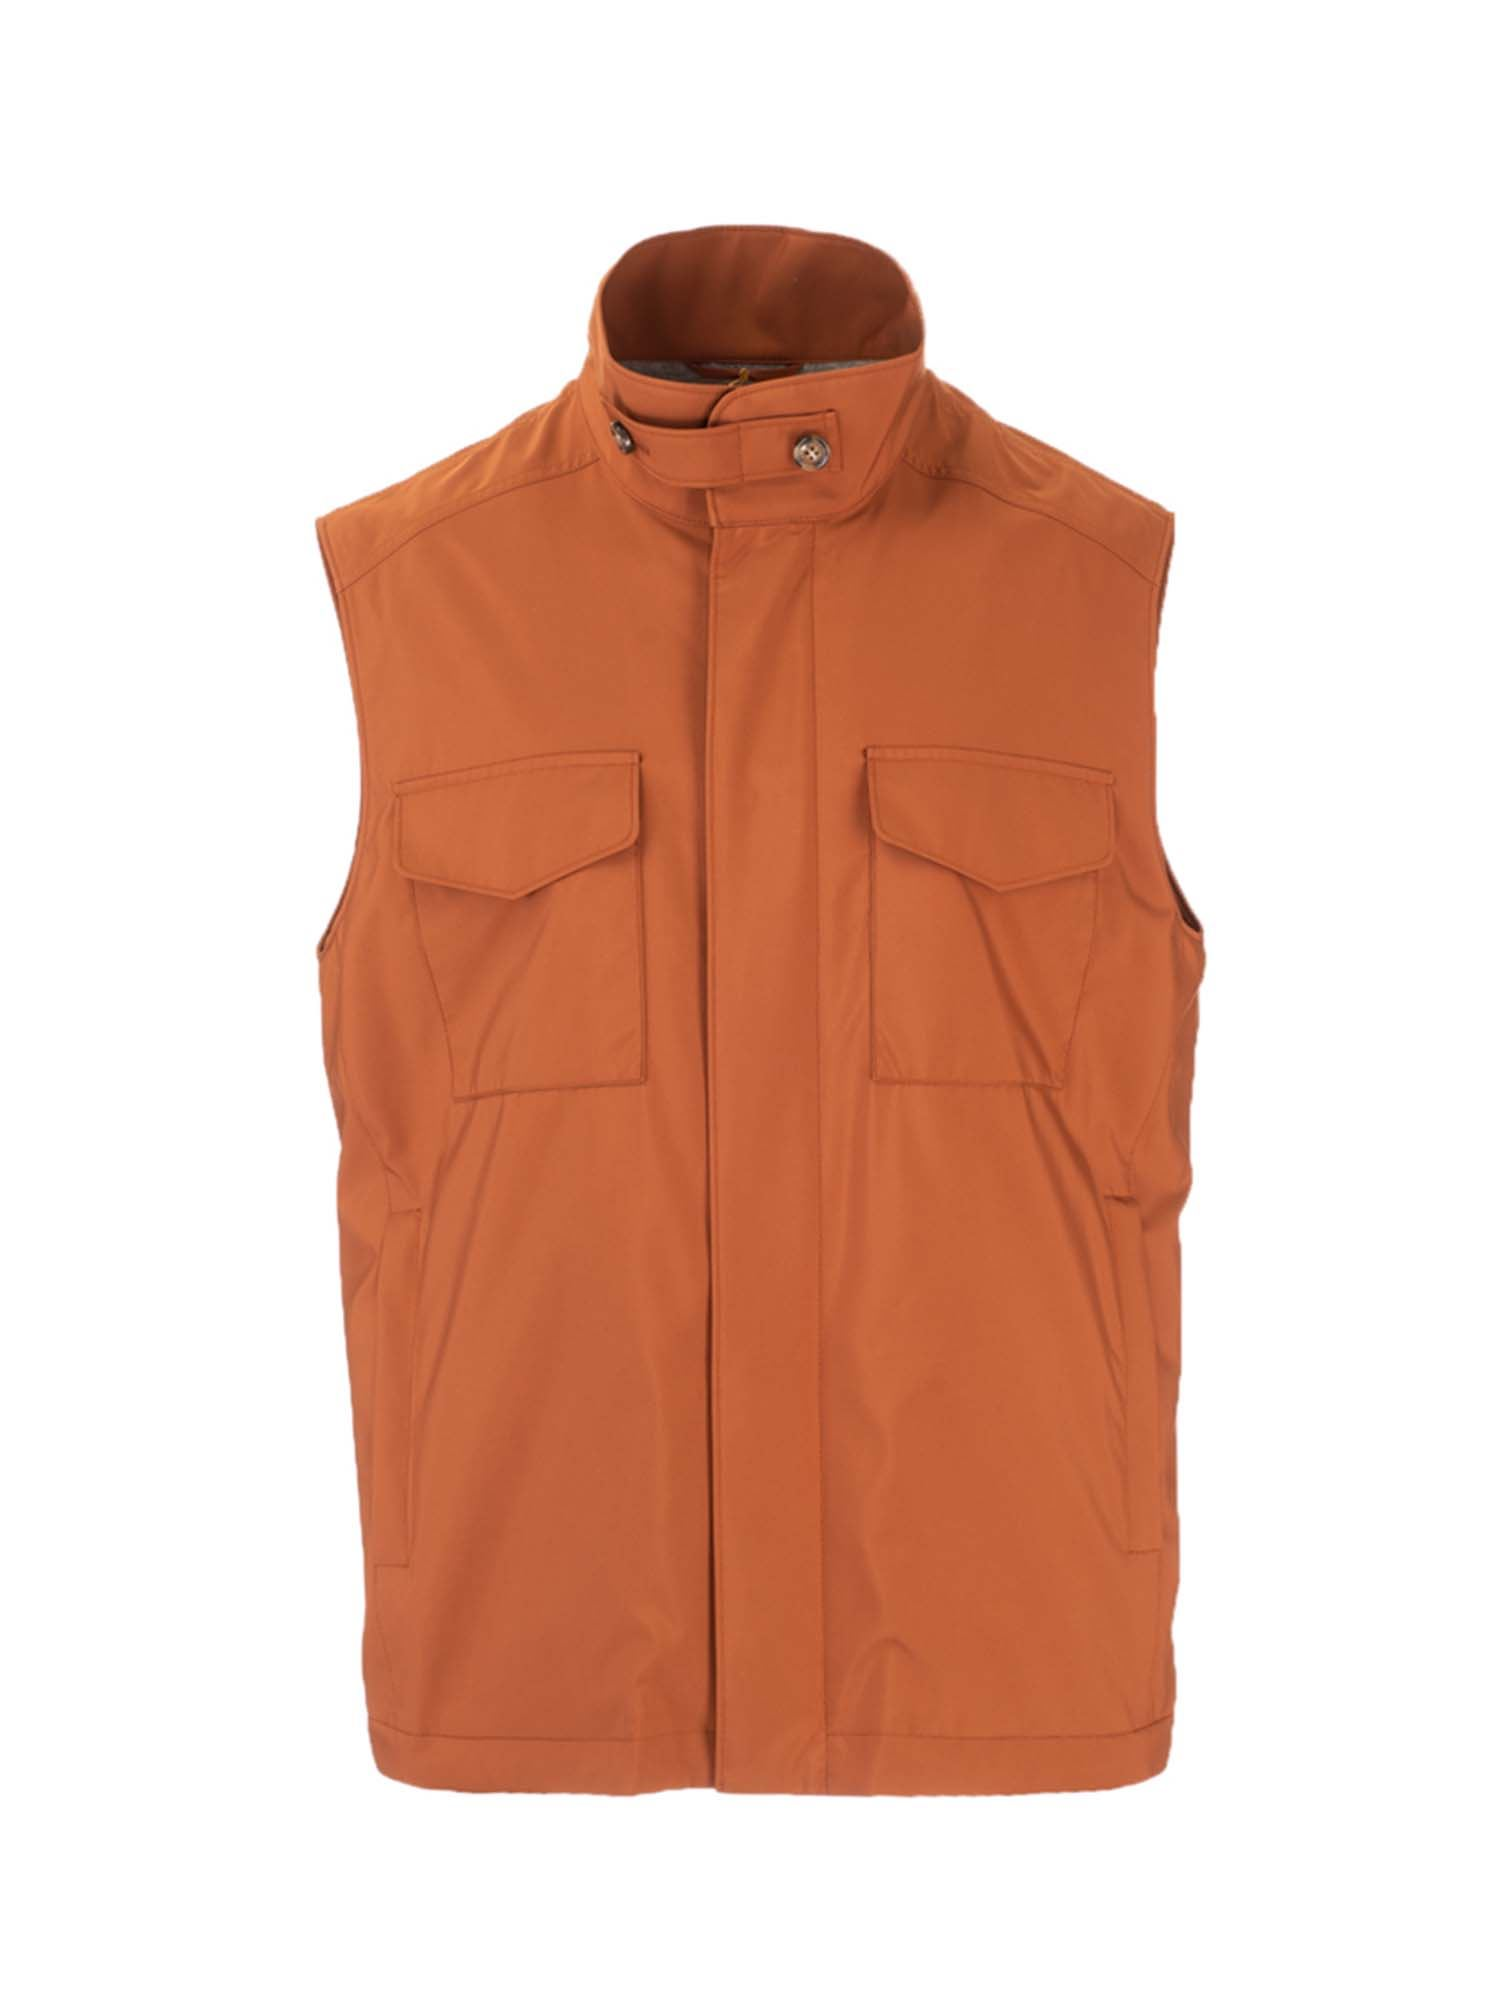 Loro Piana TRAVELER WINDMATE WAISTCOAT IN SOFT RUST